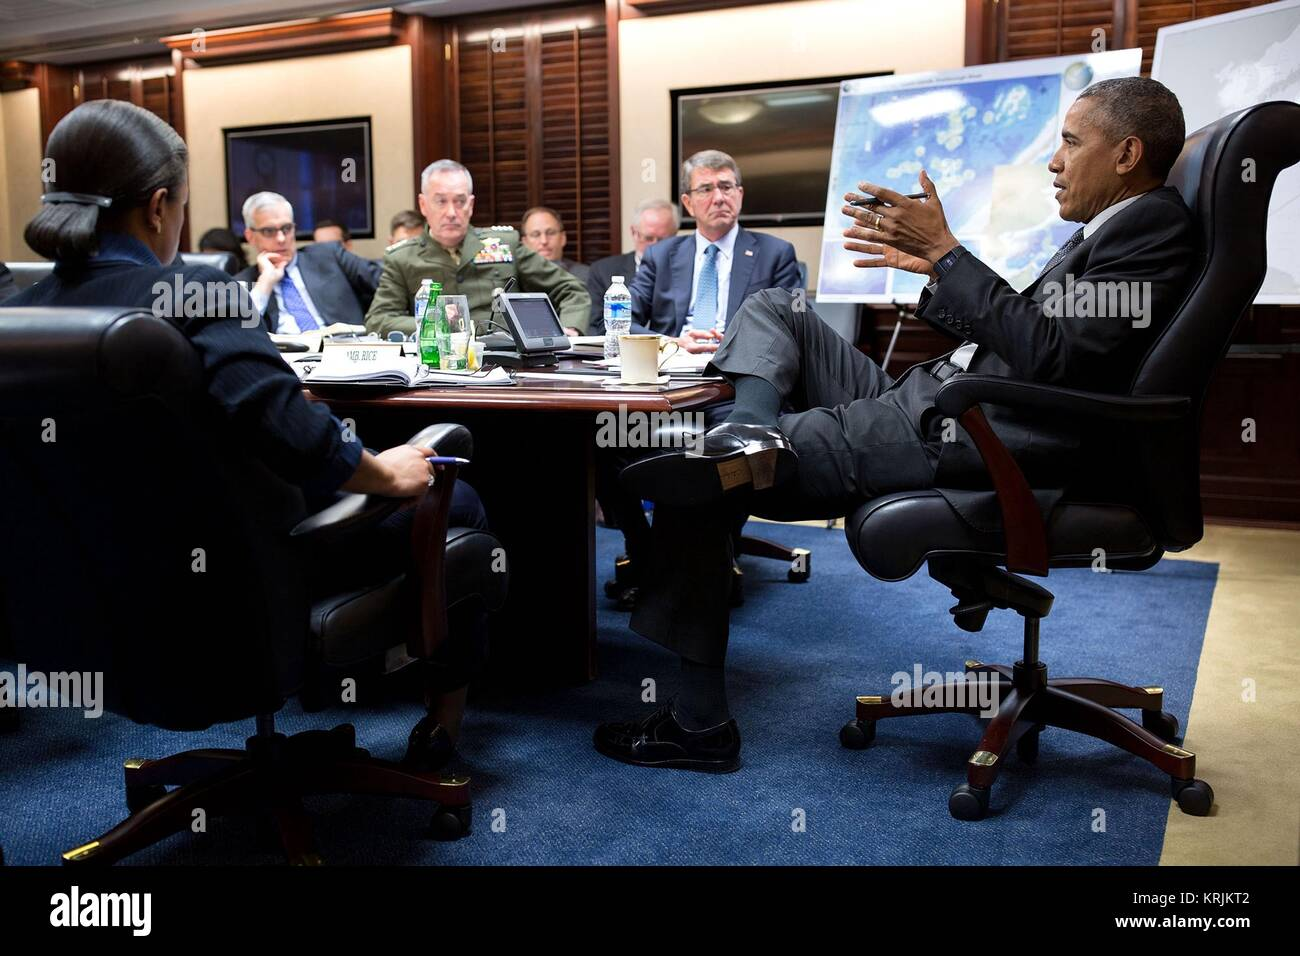 U.S. President Barack Obama meets with the National Security Council at the White House Situation Room March 18, - Stock Image